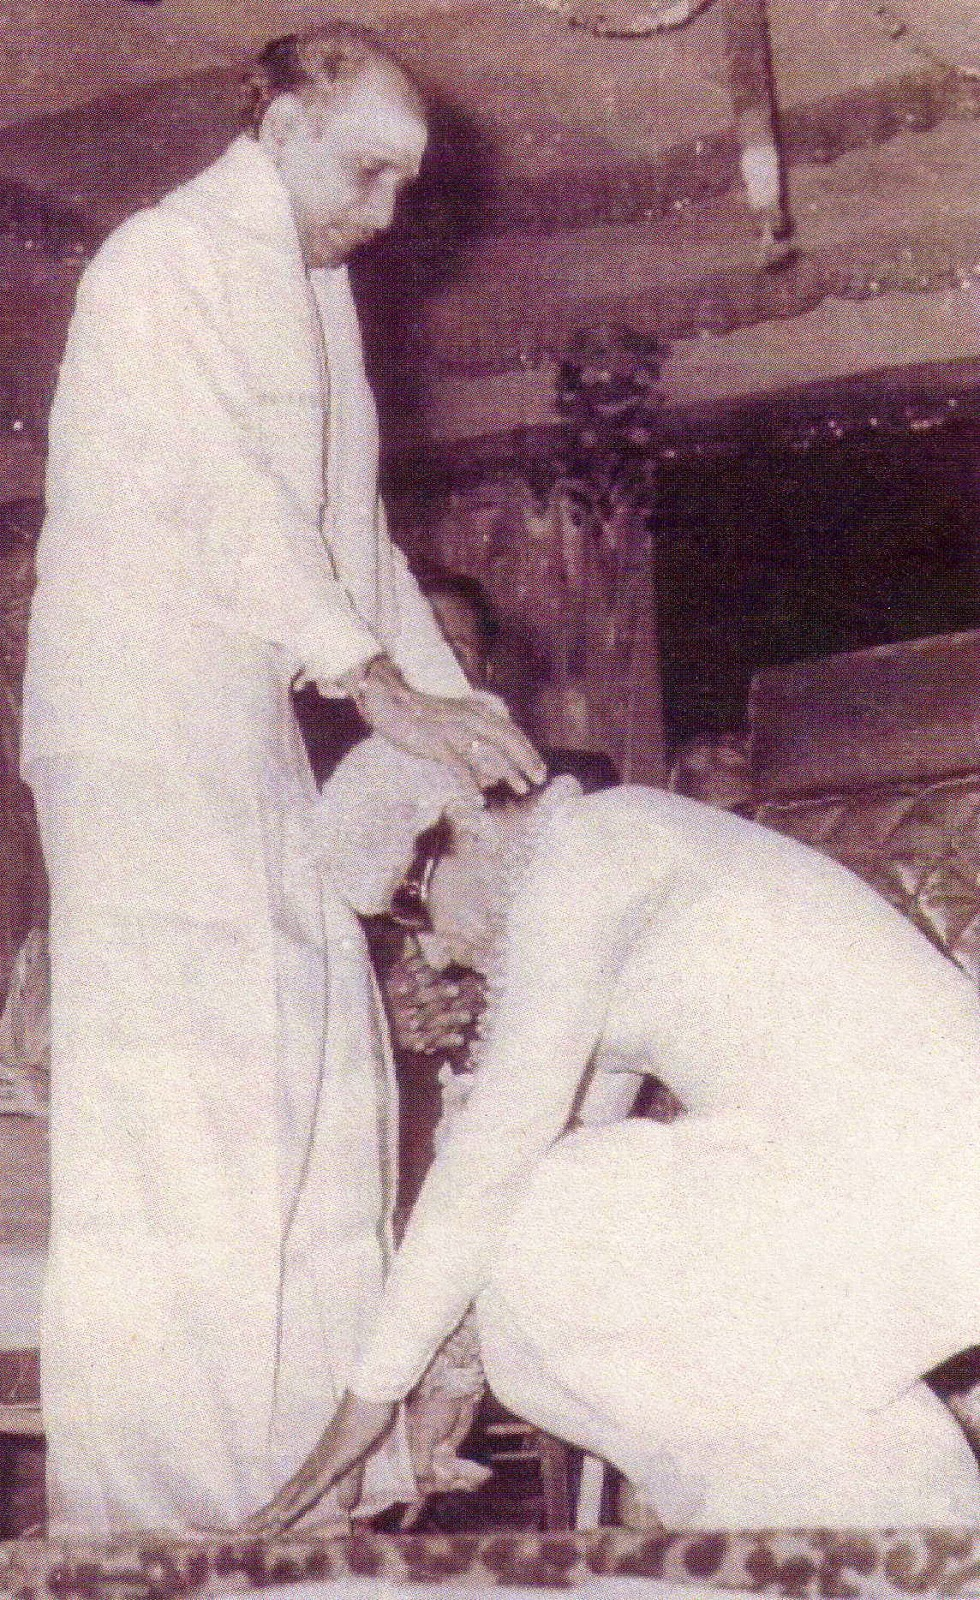 'Idaya Deivam' MGR Getting Blessings from Actor M.K. Radha